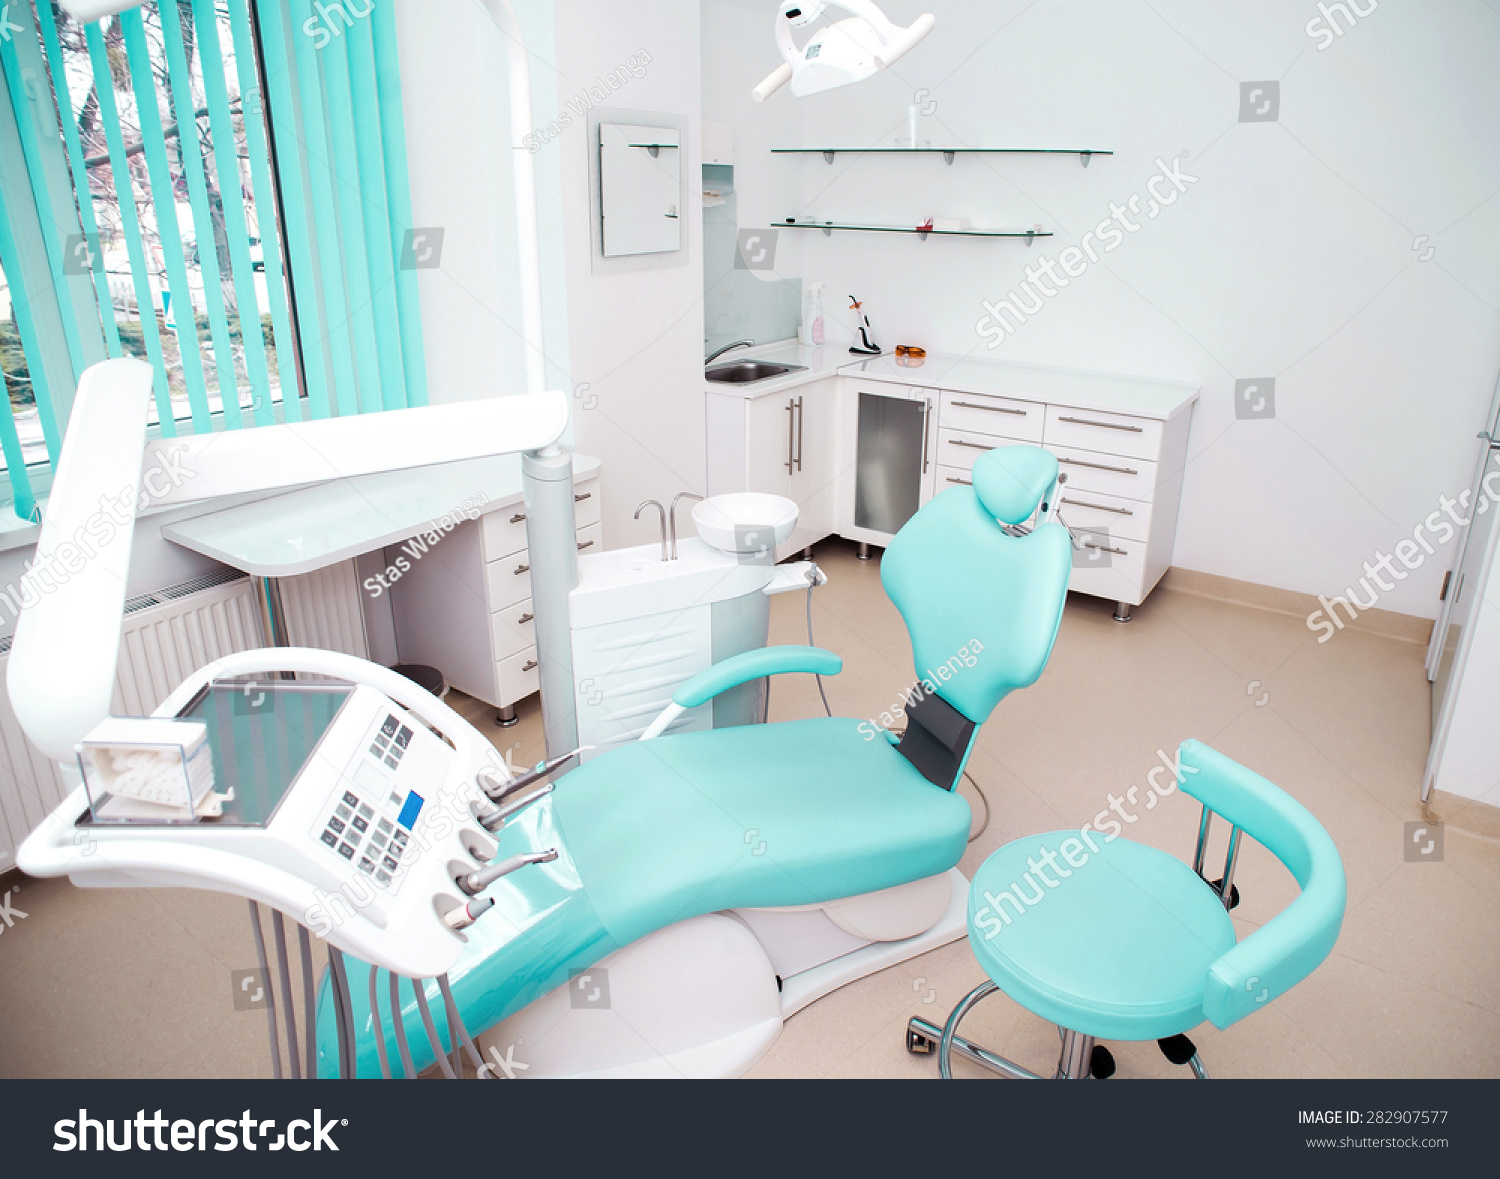 dental office interior design. Dental Clinic Interior Design With Chair And Tools. Office O